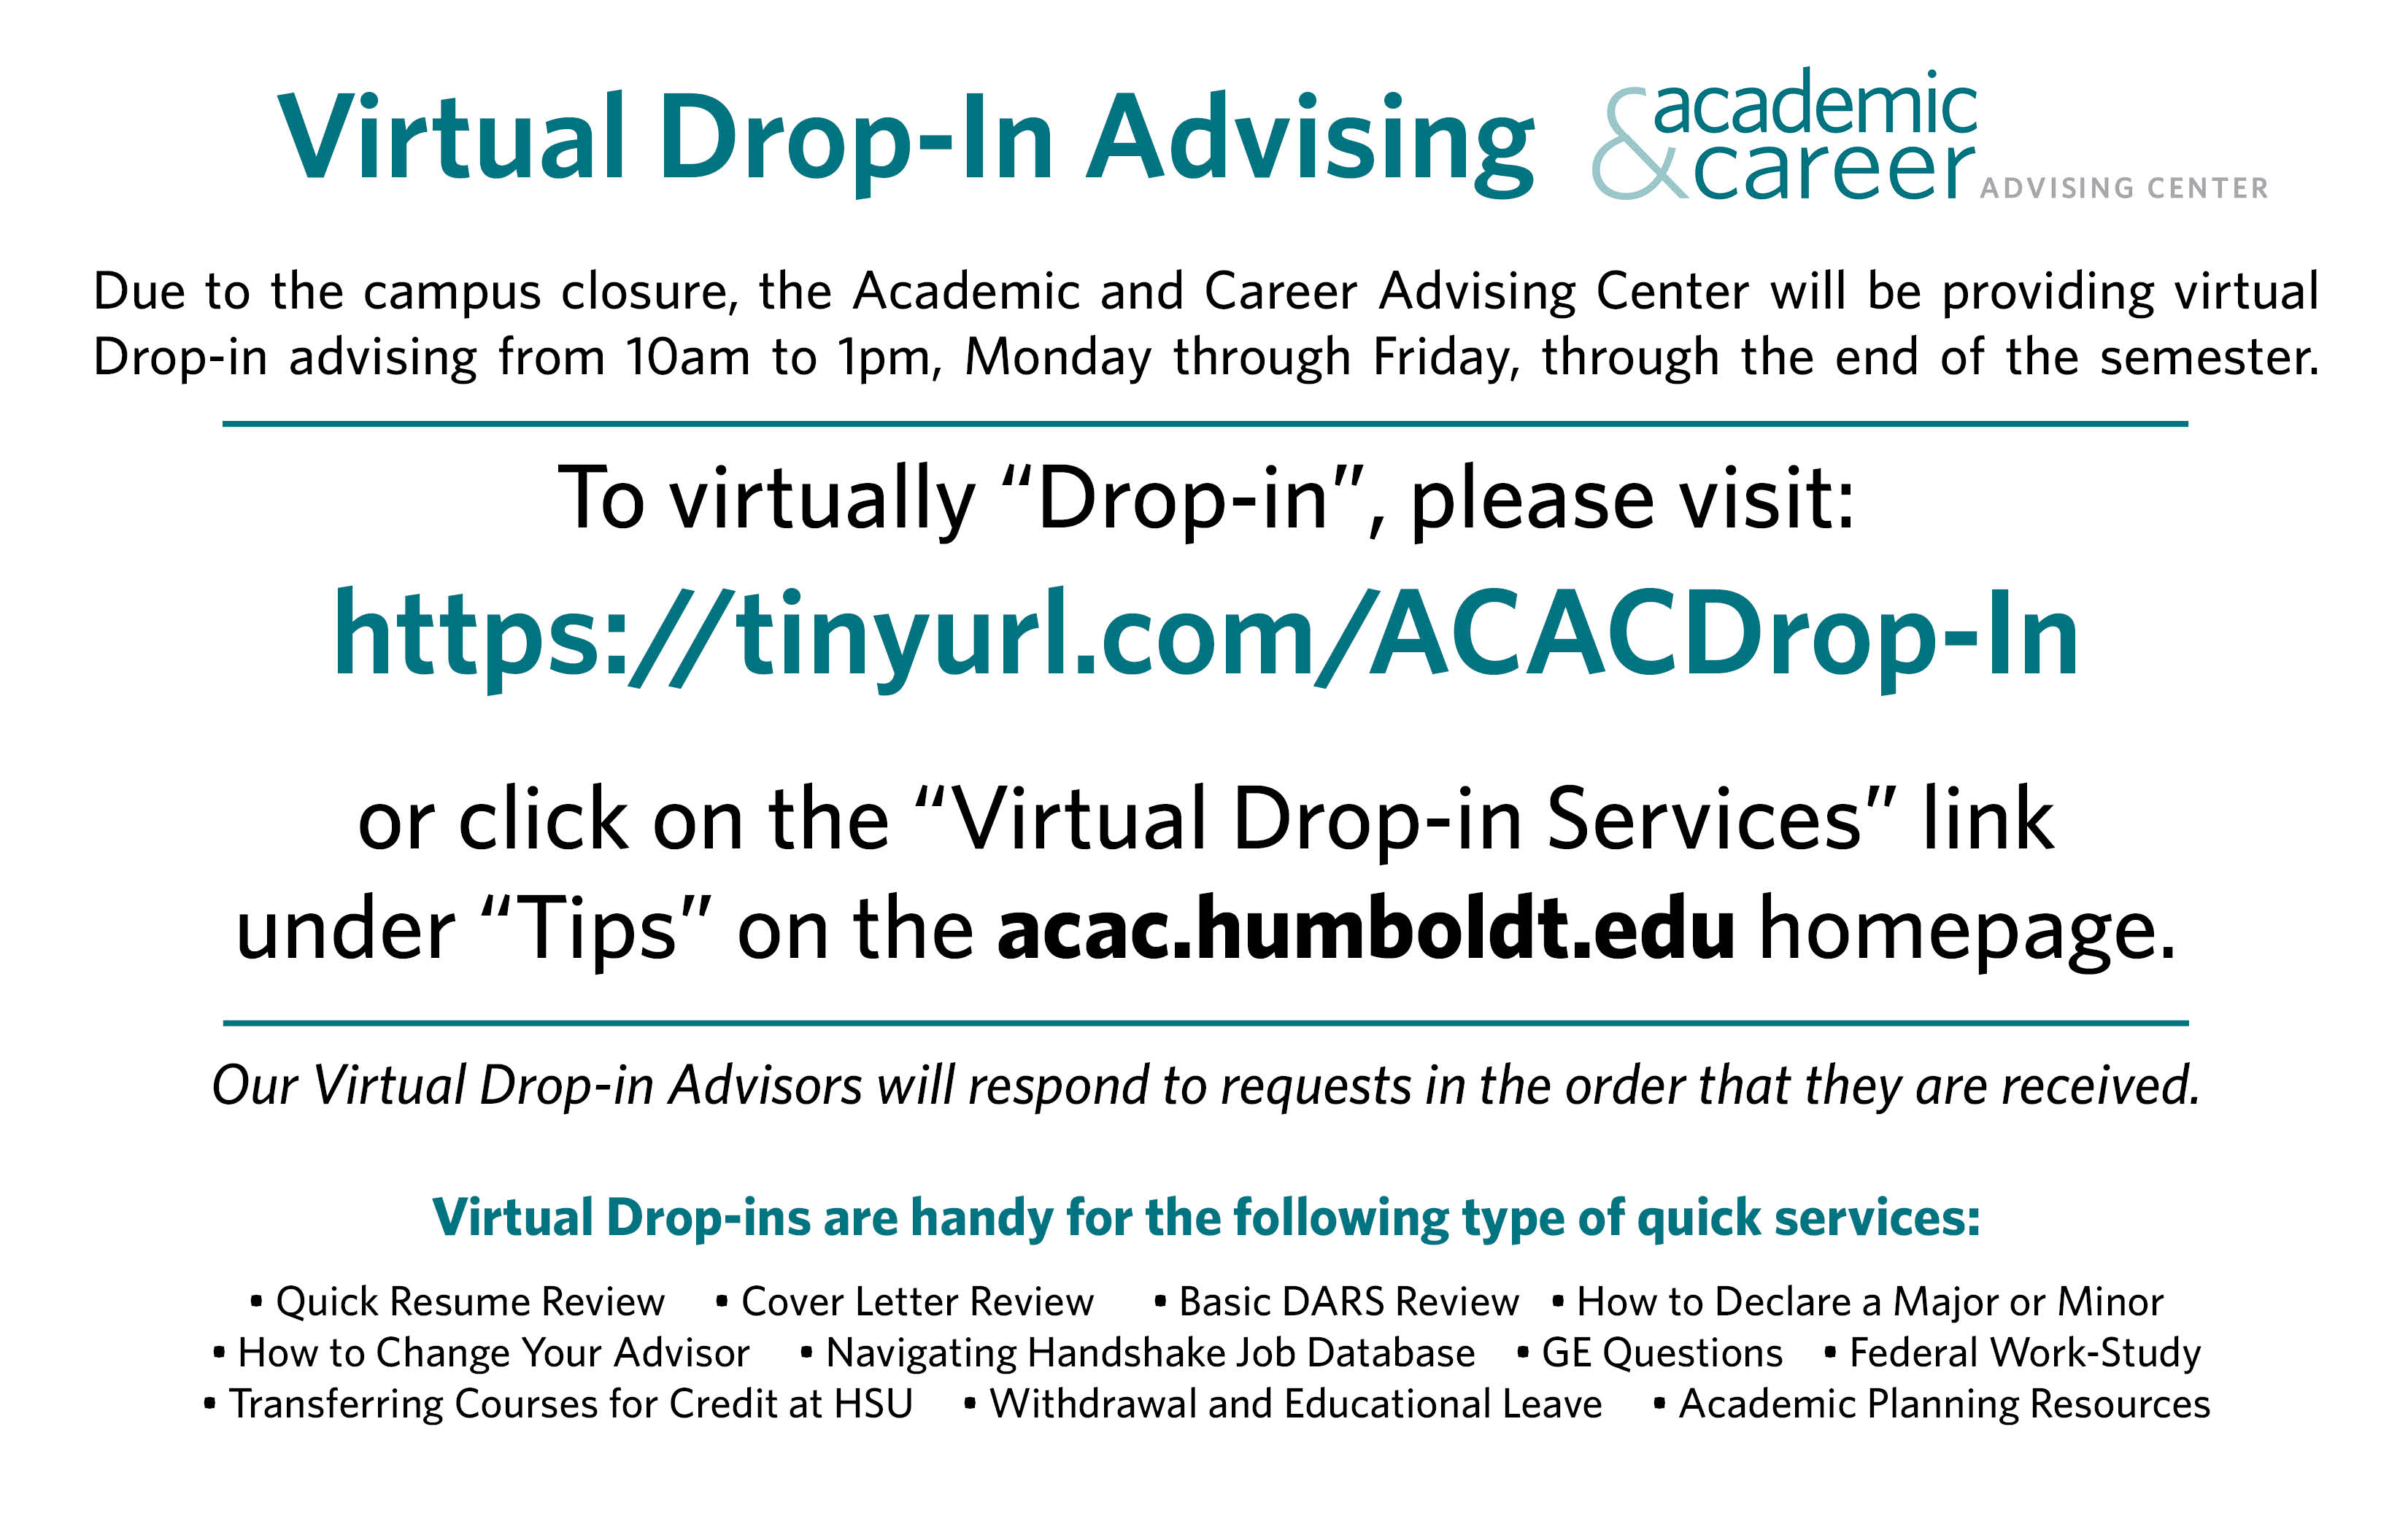 drop-ins available via email at acac@humboldt.edu